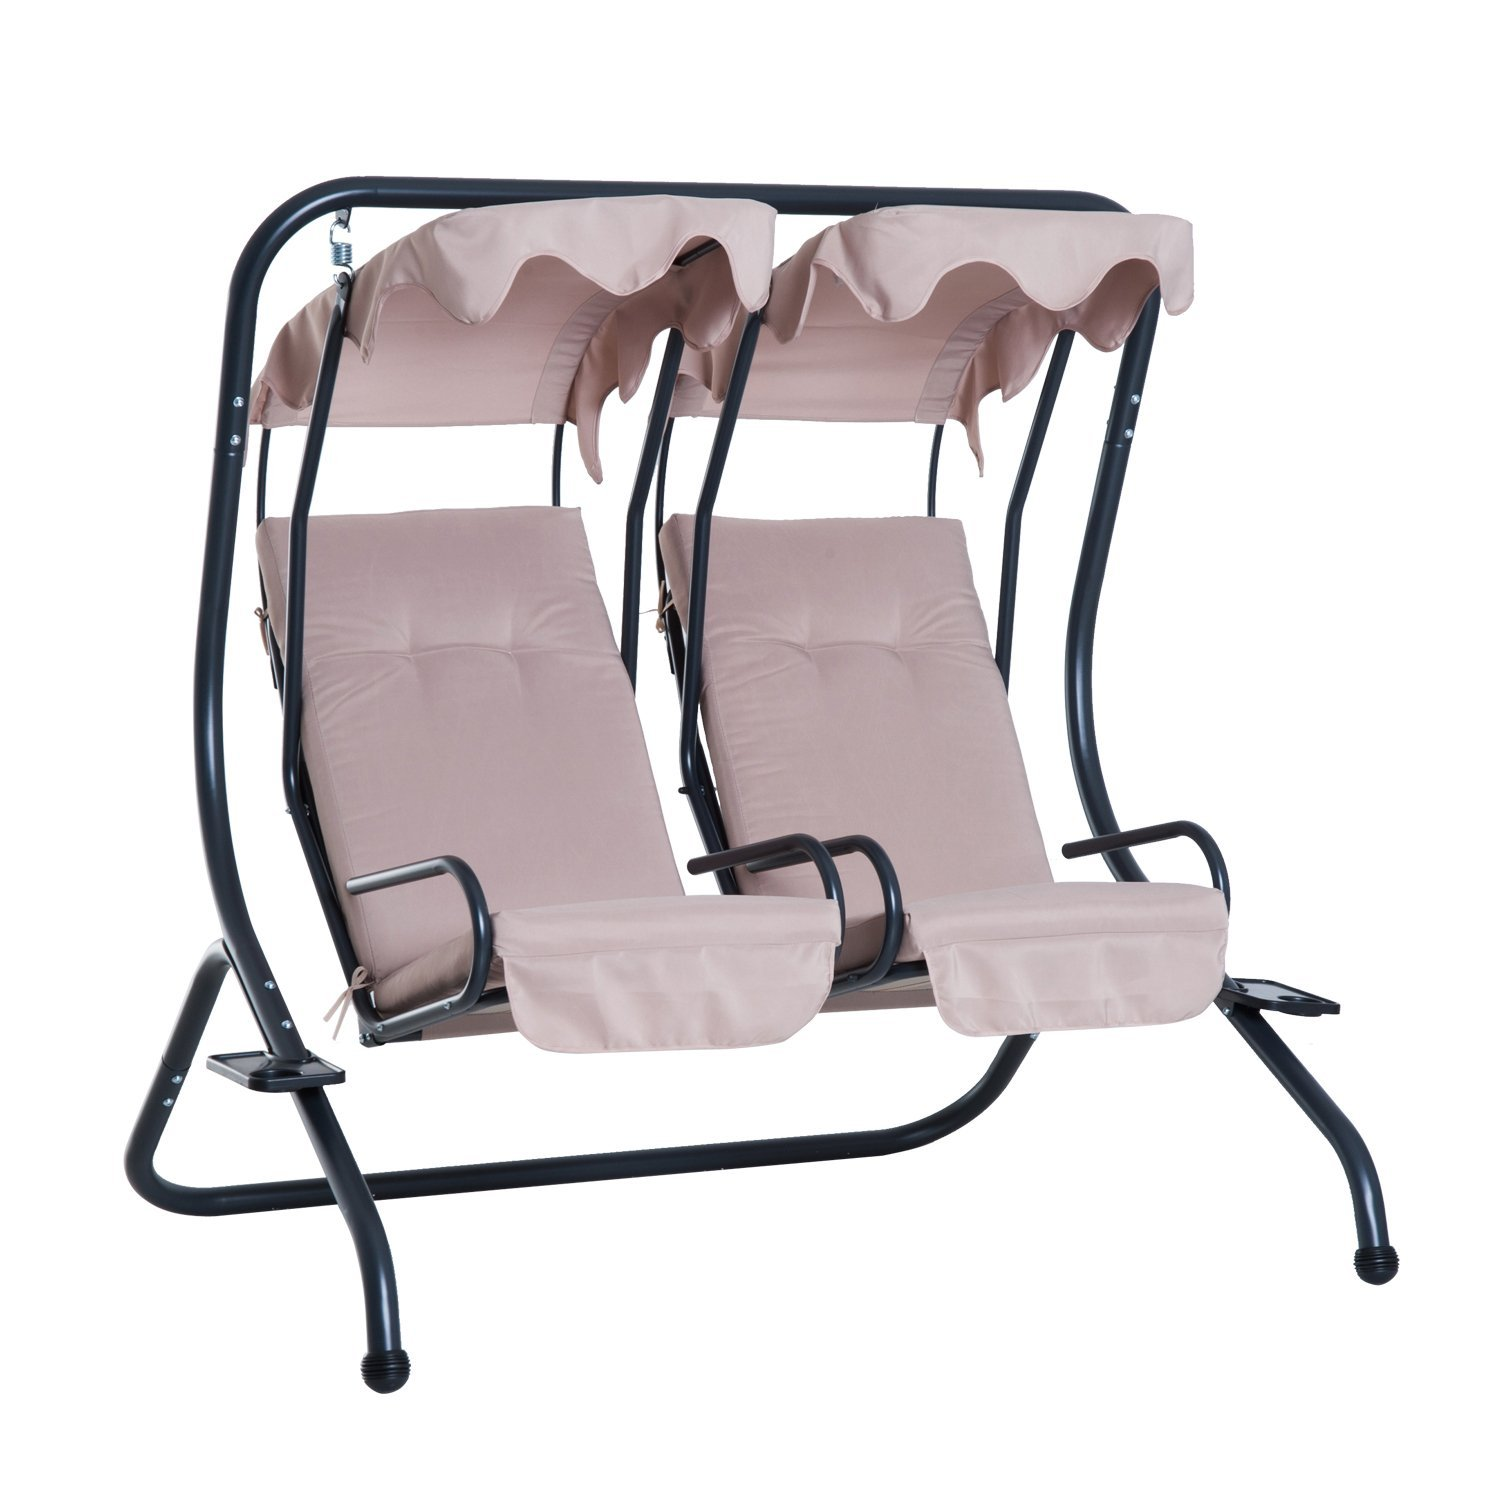 Outsunny Swing 2 Seater With Sunshield Sunshade Holder Tray Drinks Steel Garden 170 × 136 × 170 Cm